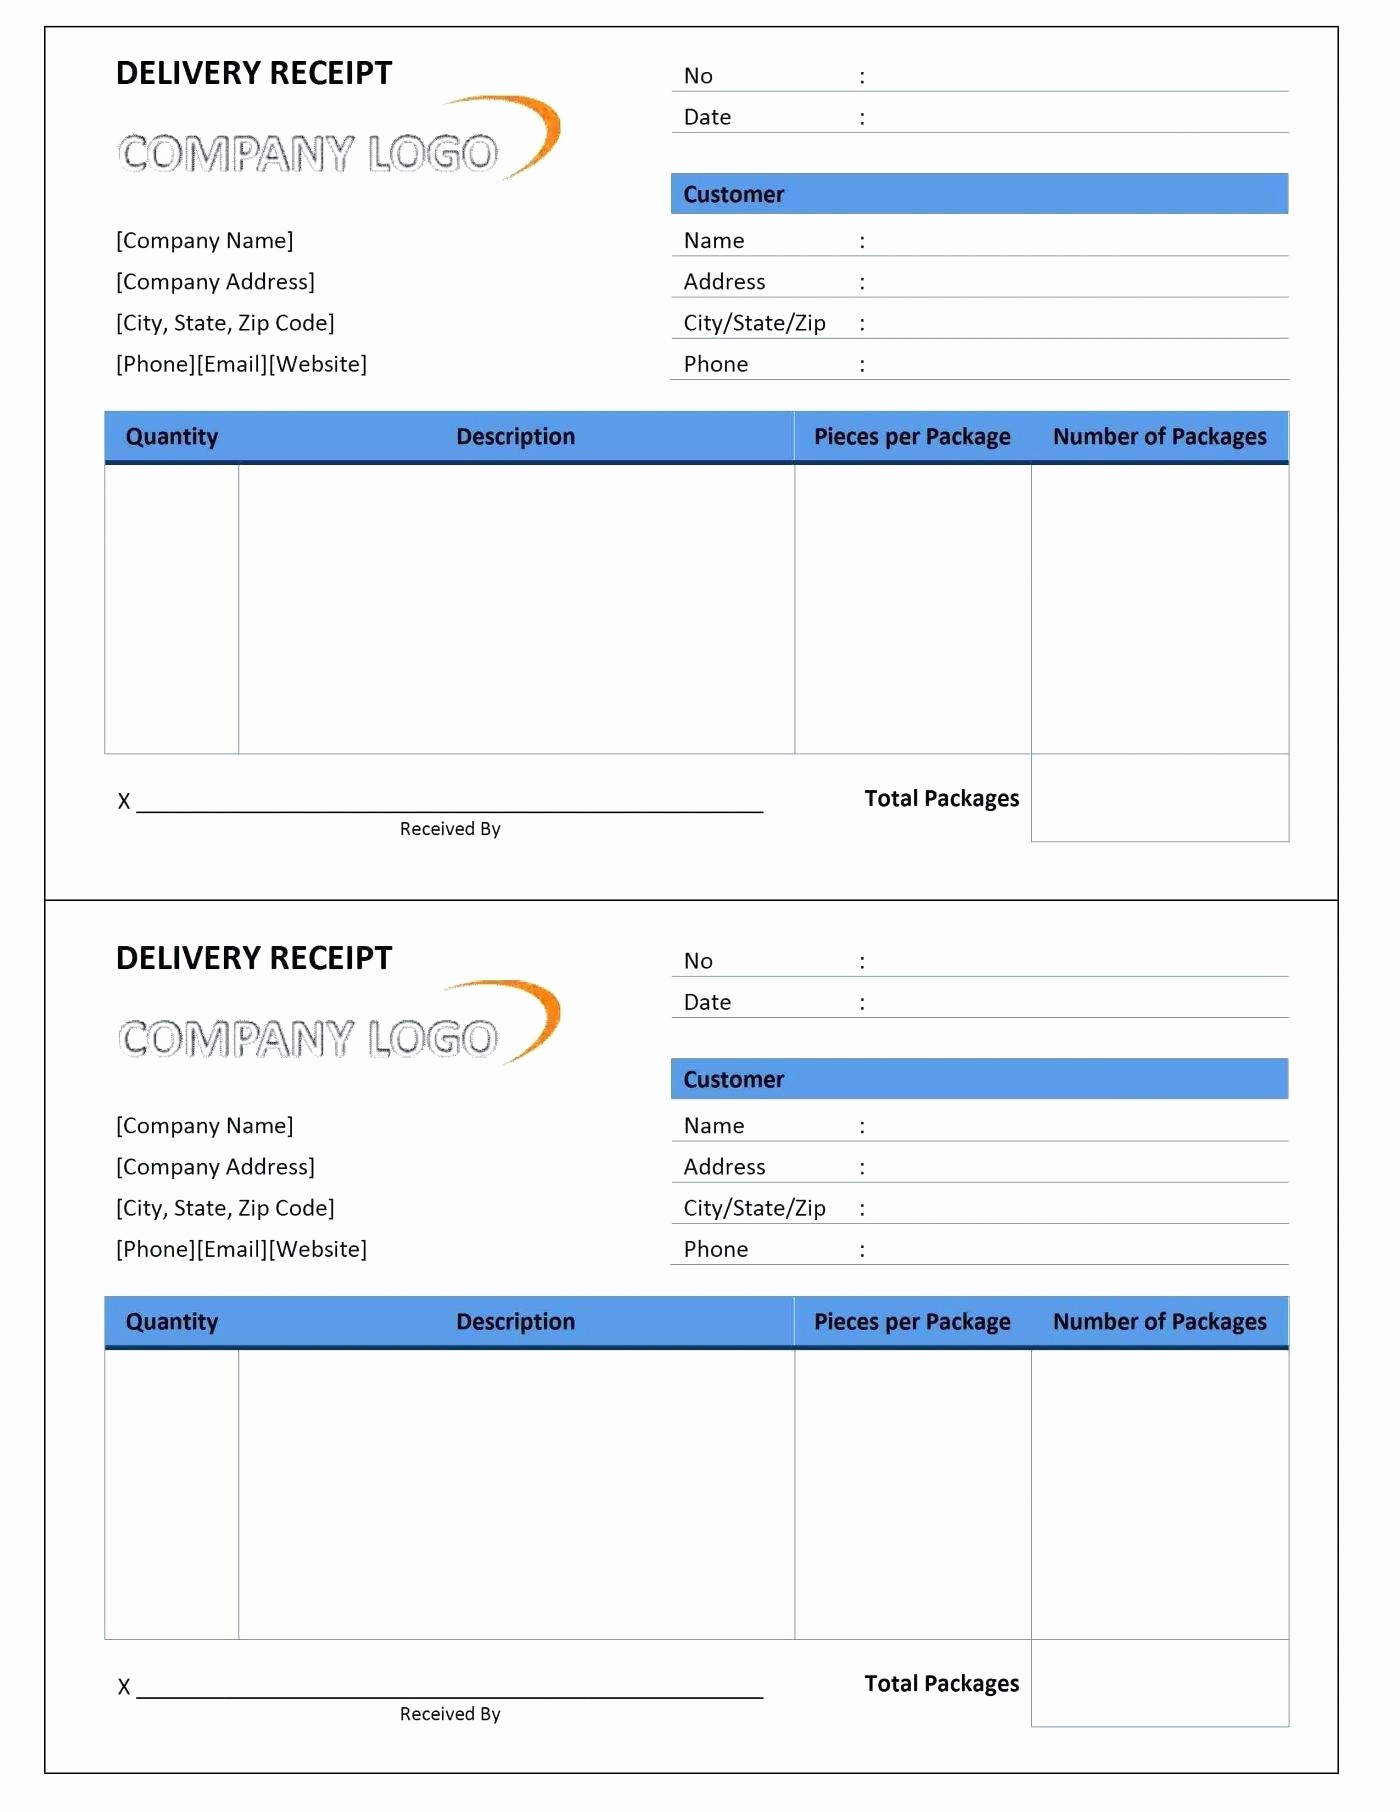 Child Care Receipt Template Excel Best Of Child Care Invoice Template